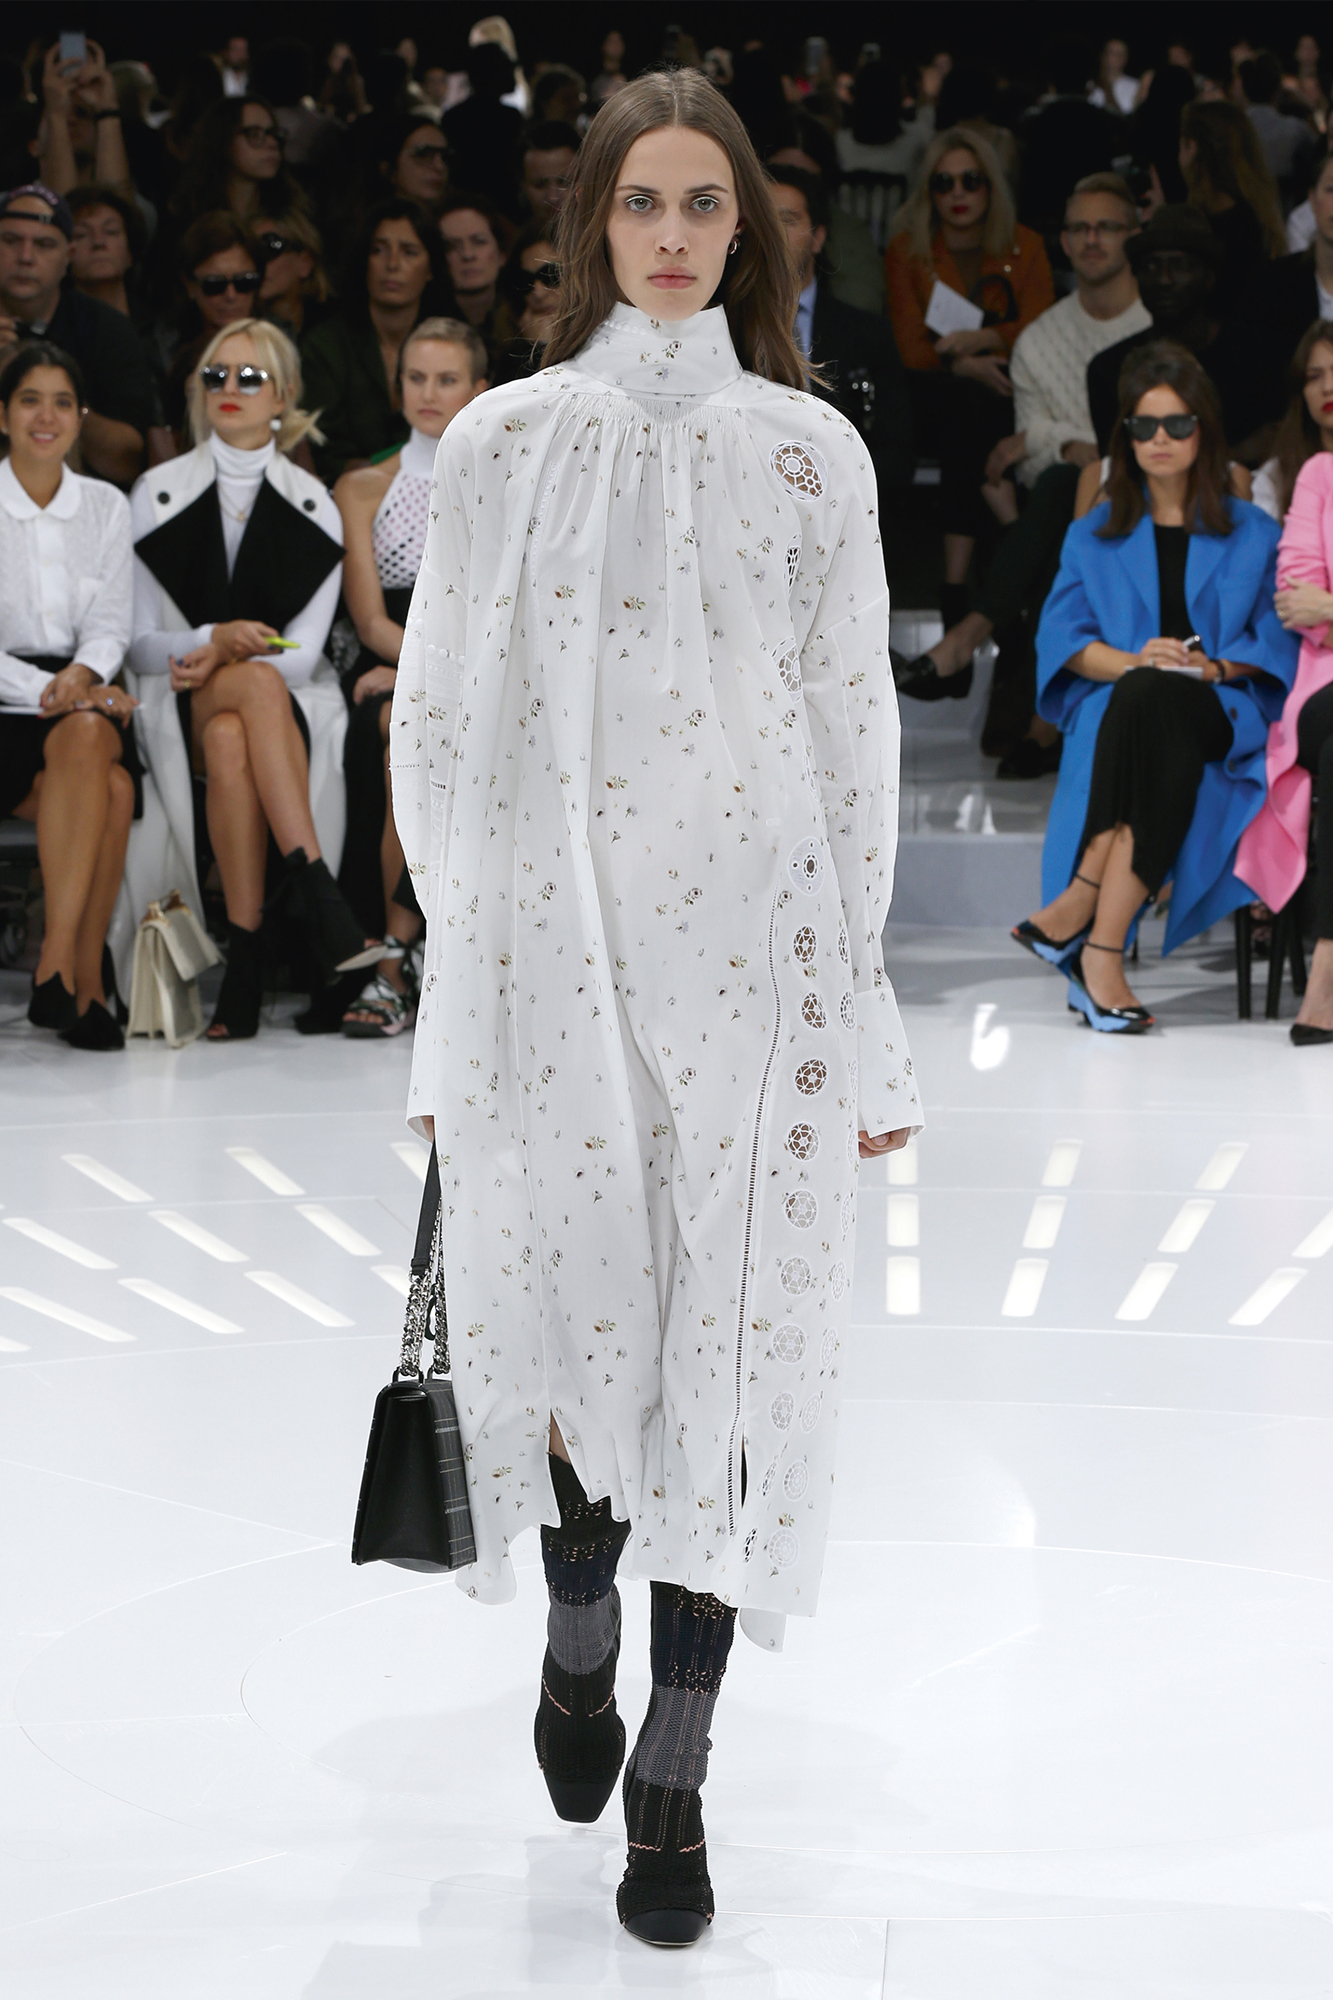 Christian Dior Haute Couture Spring-Summer Ready To Wear Dresses & Accessories Collection 2015-16 (12)